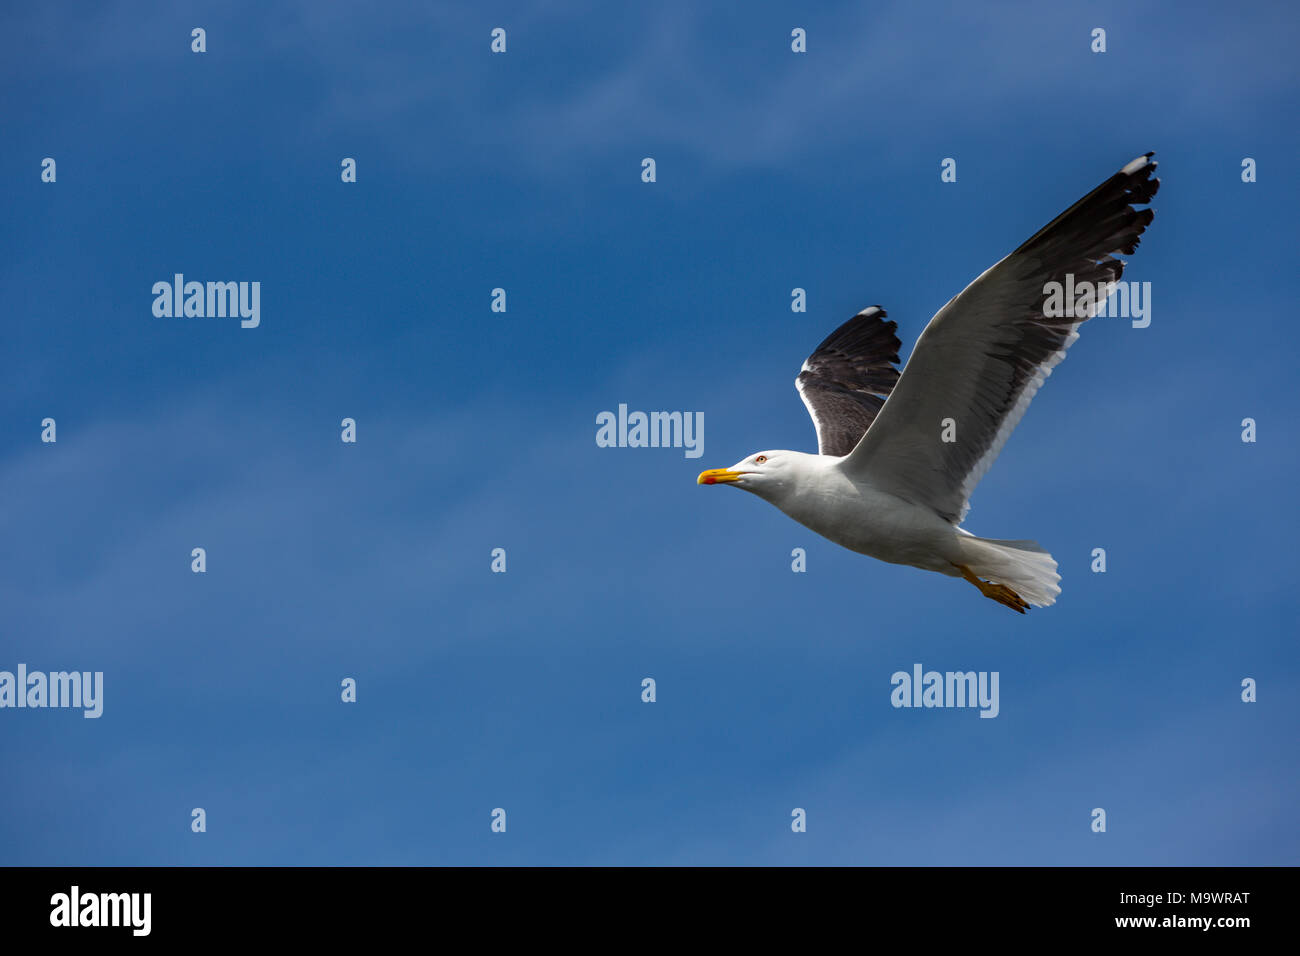 A seagull, with orange beak on the way in the blue sky - Stock Image